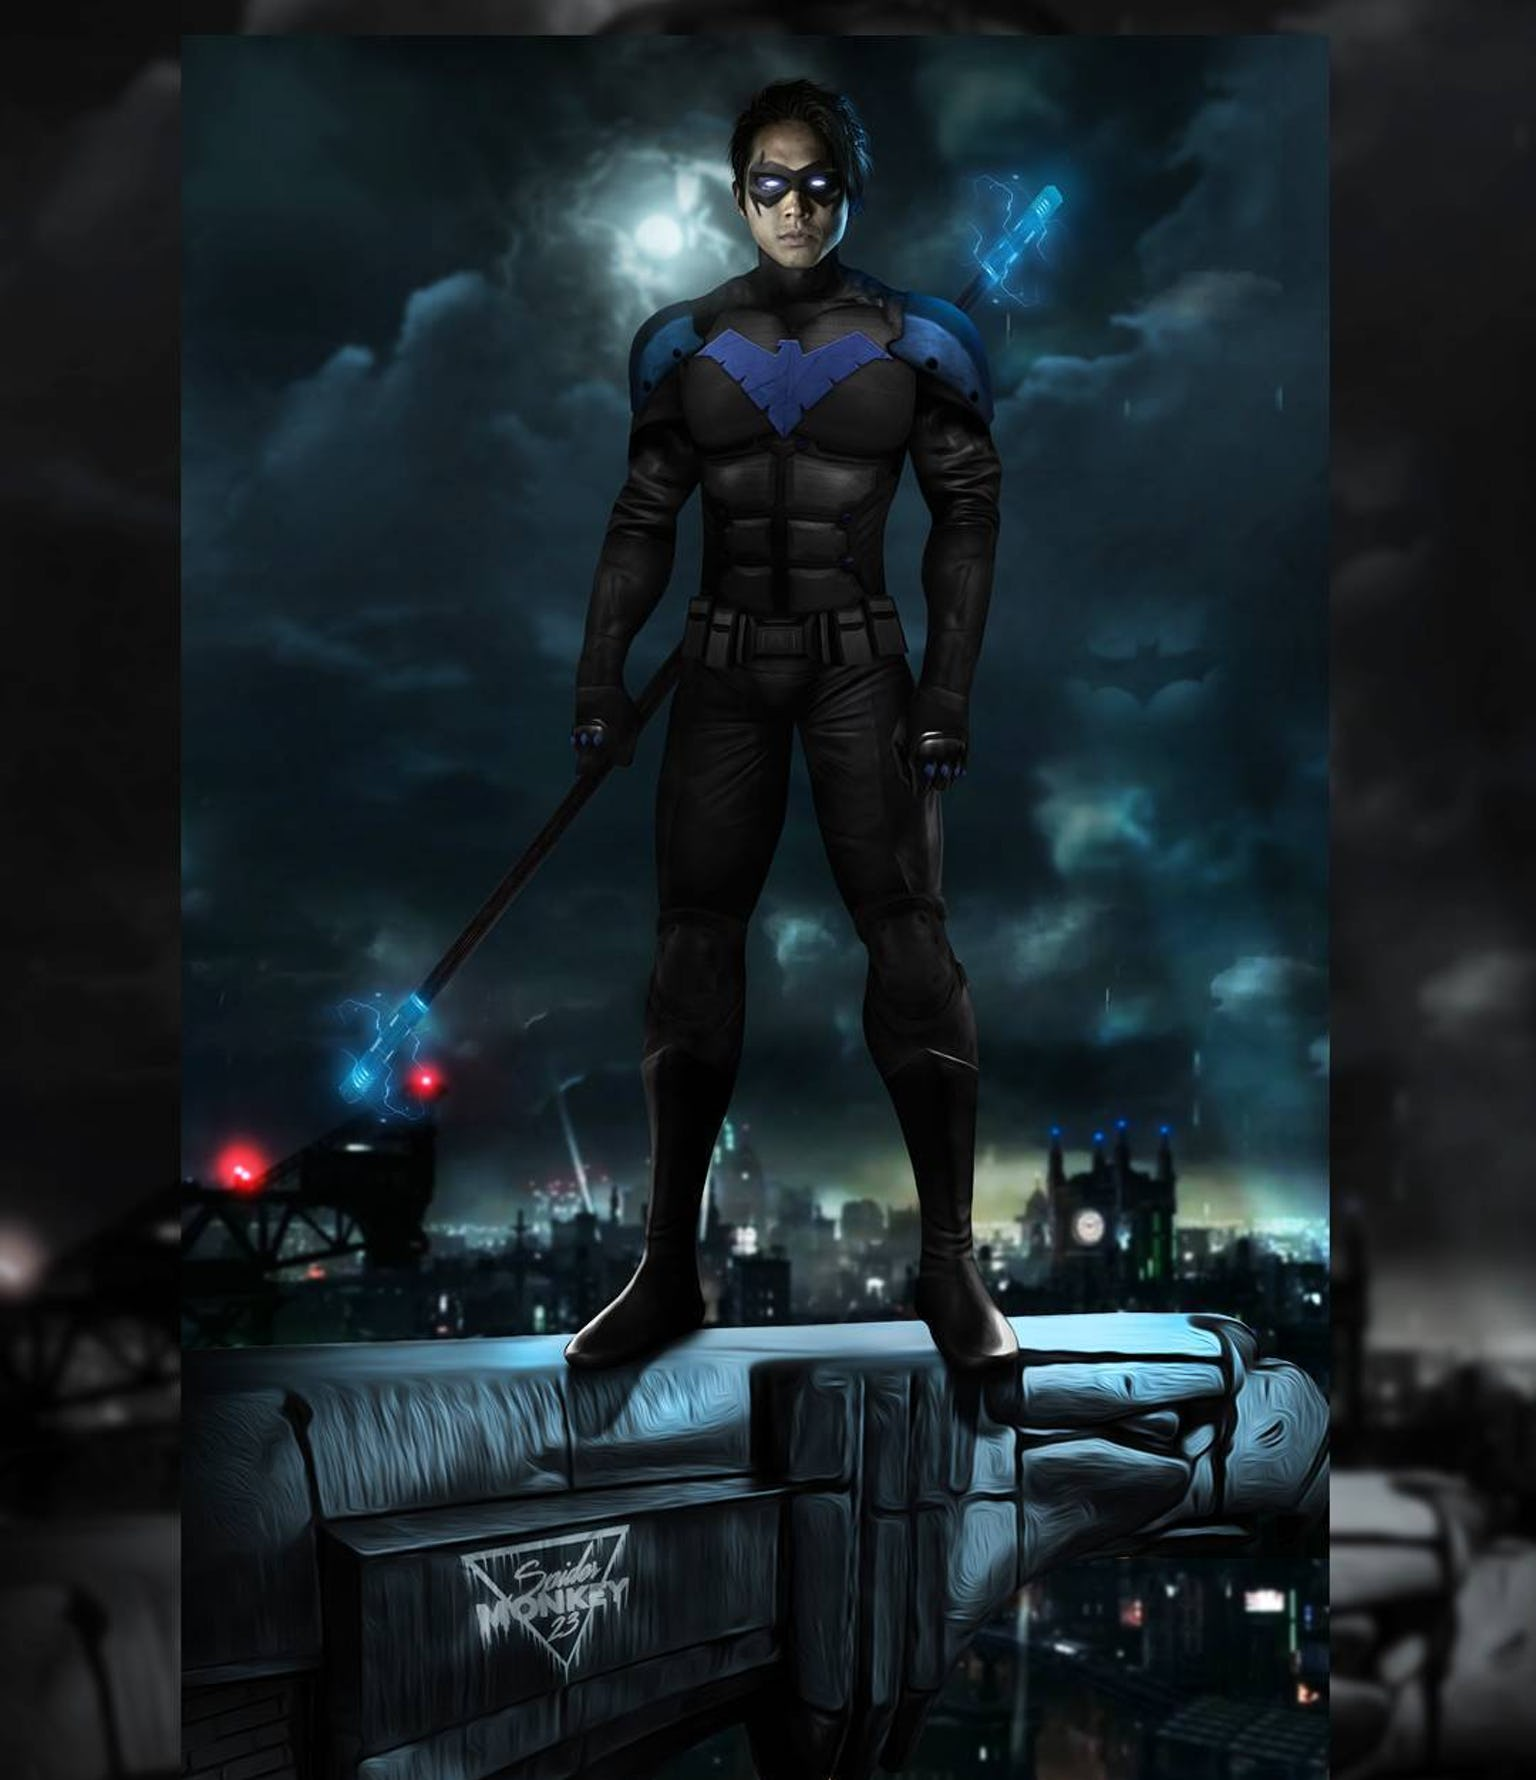 Titans Nightwing Suit #robindc | Nightwing cosplay, Titans